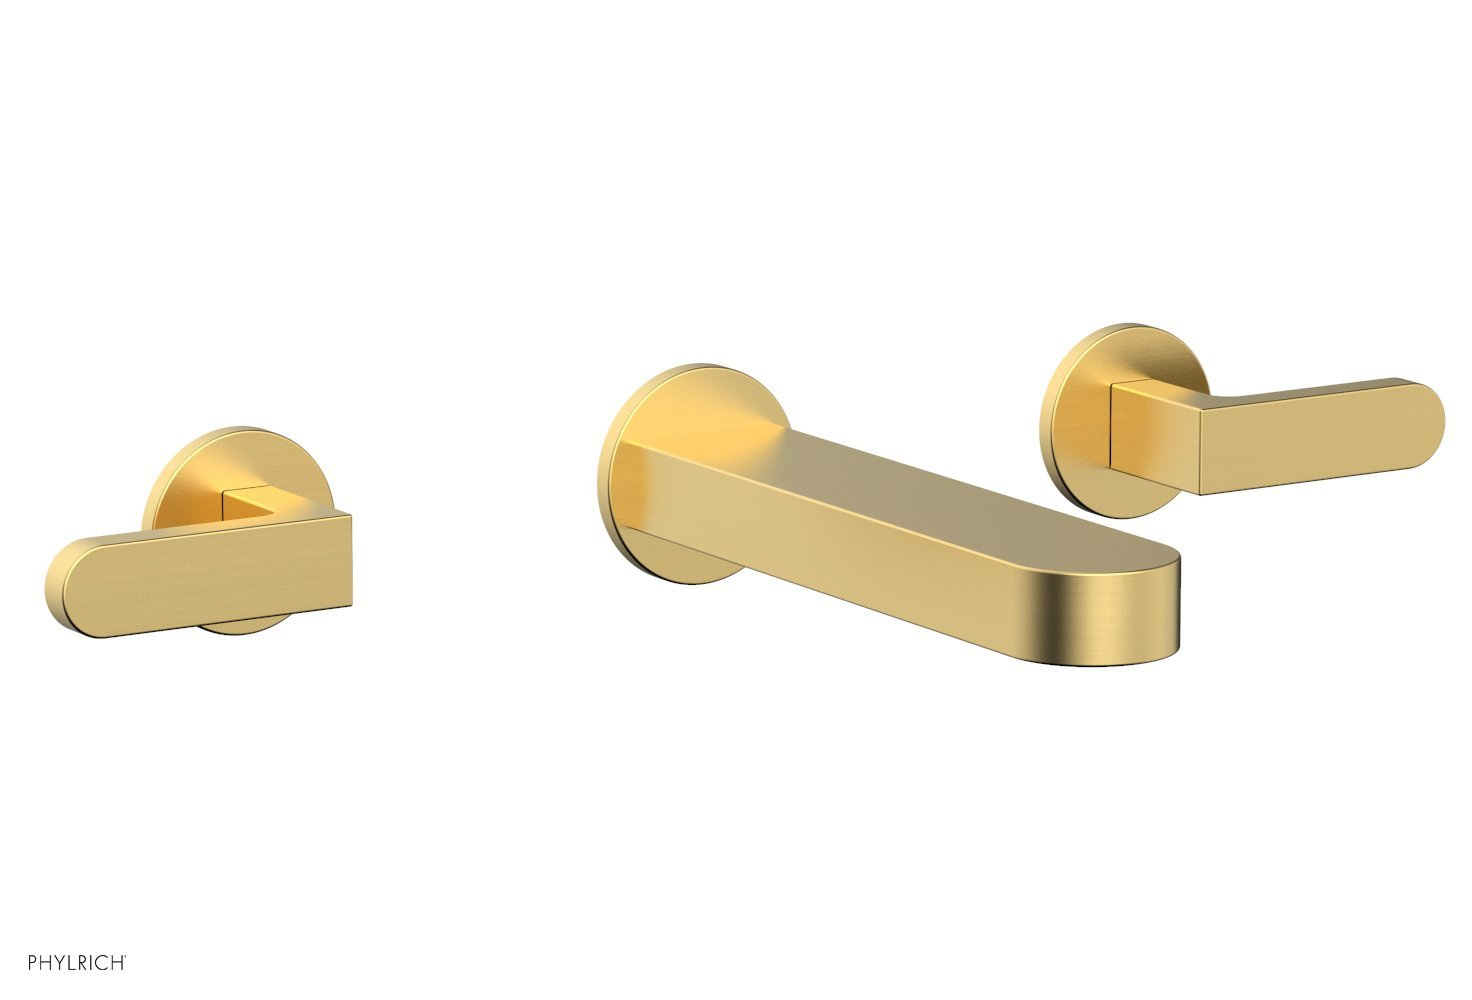 Phylrich 183-12-24B ROND Wall Lavatory Set - Lever Handles - Burnished Gold